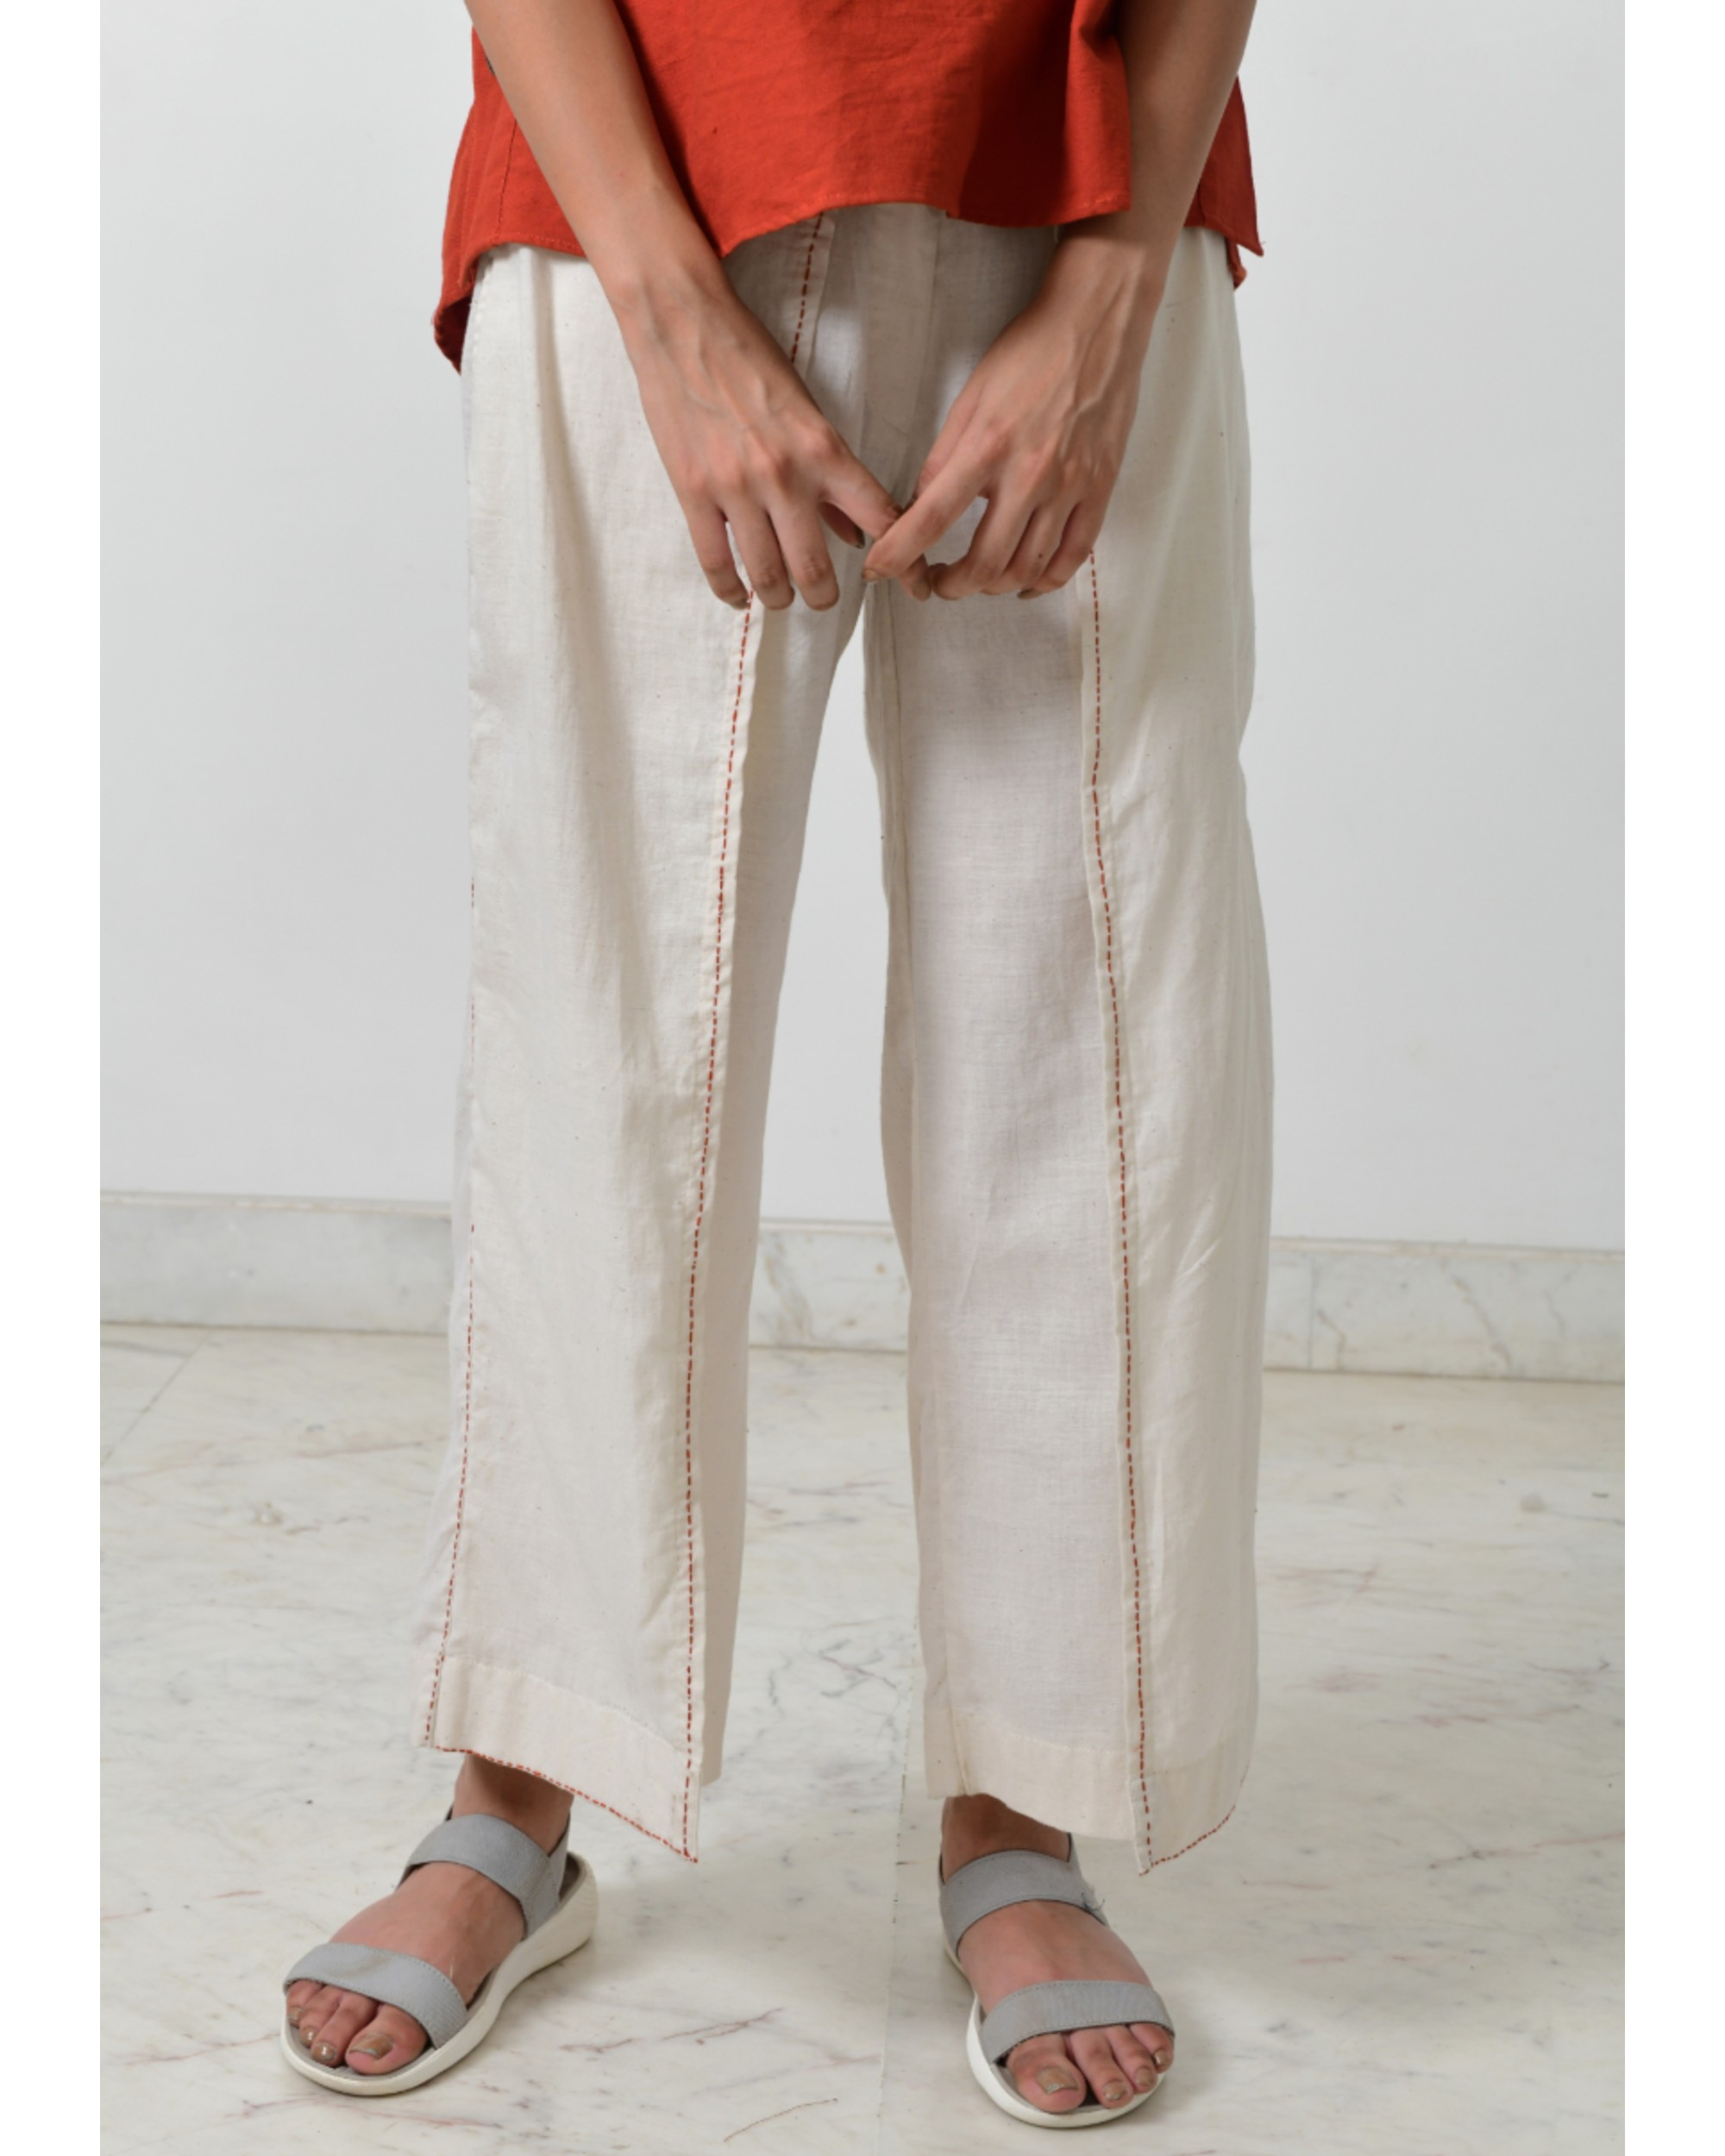 Off white tie up pants